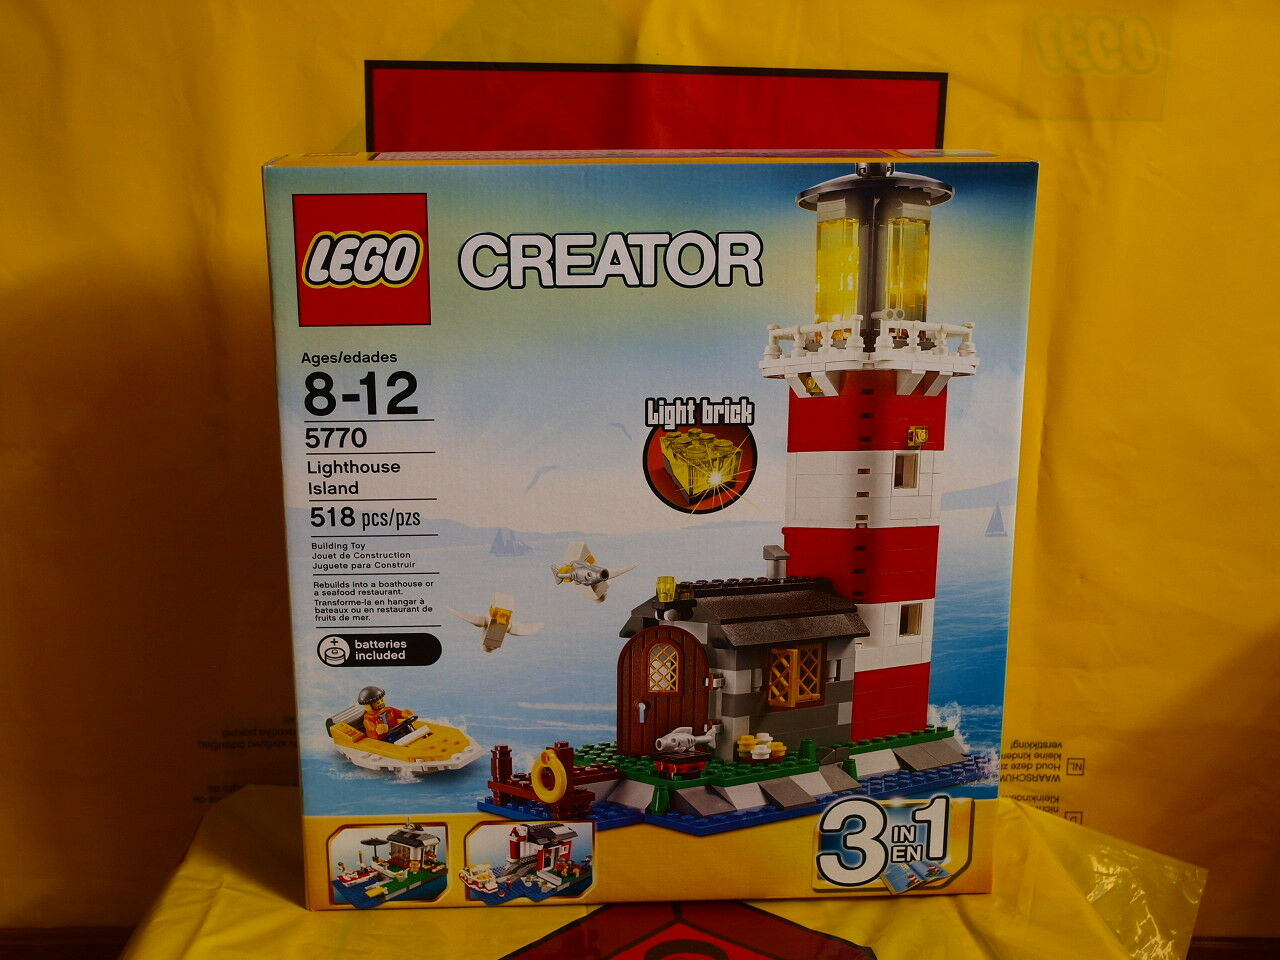 NEW LEGO Lighthouse Lighthouse Lighthouse Island 5770 MISB US Seller 8d9ea2